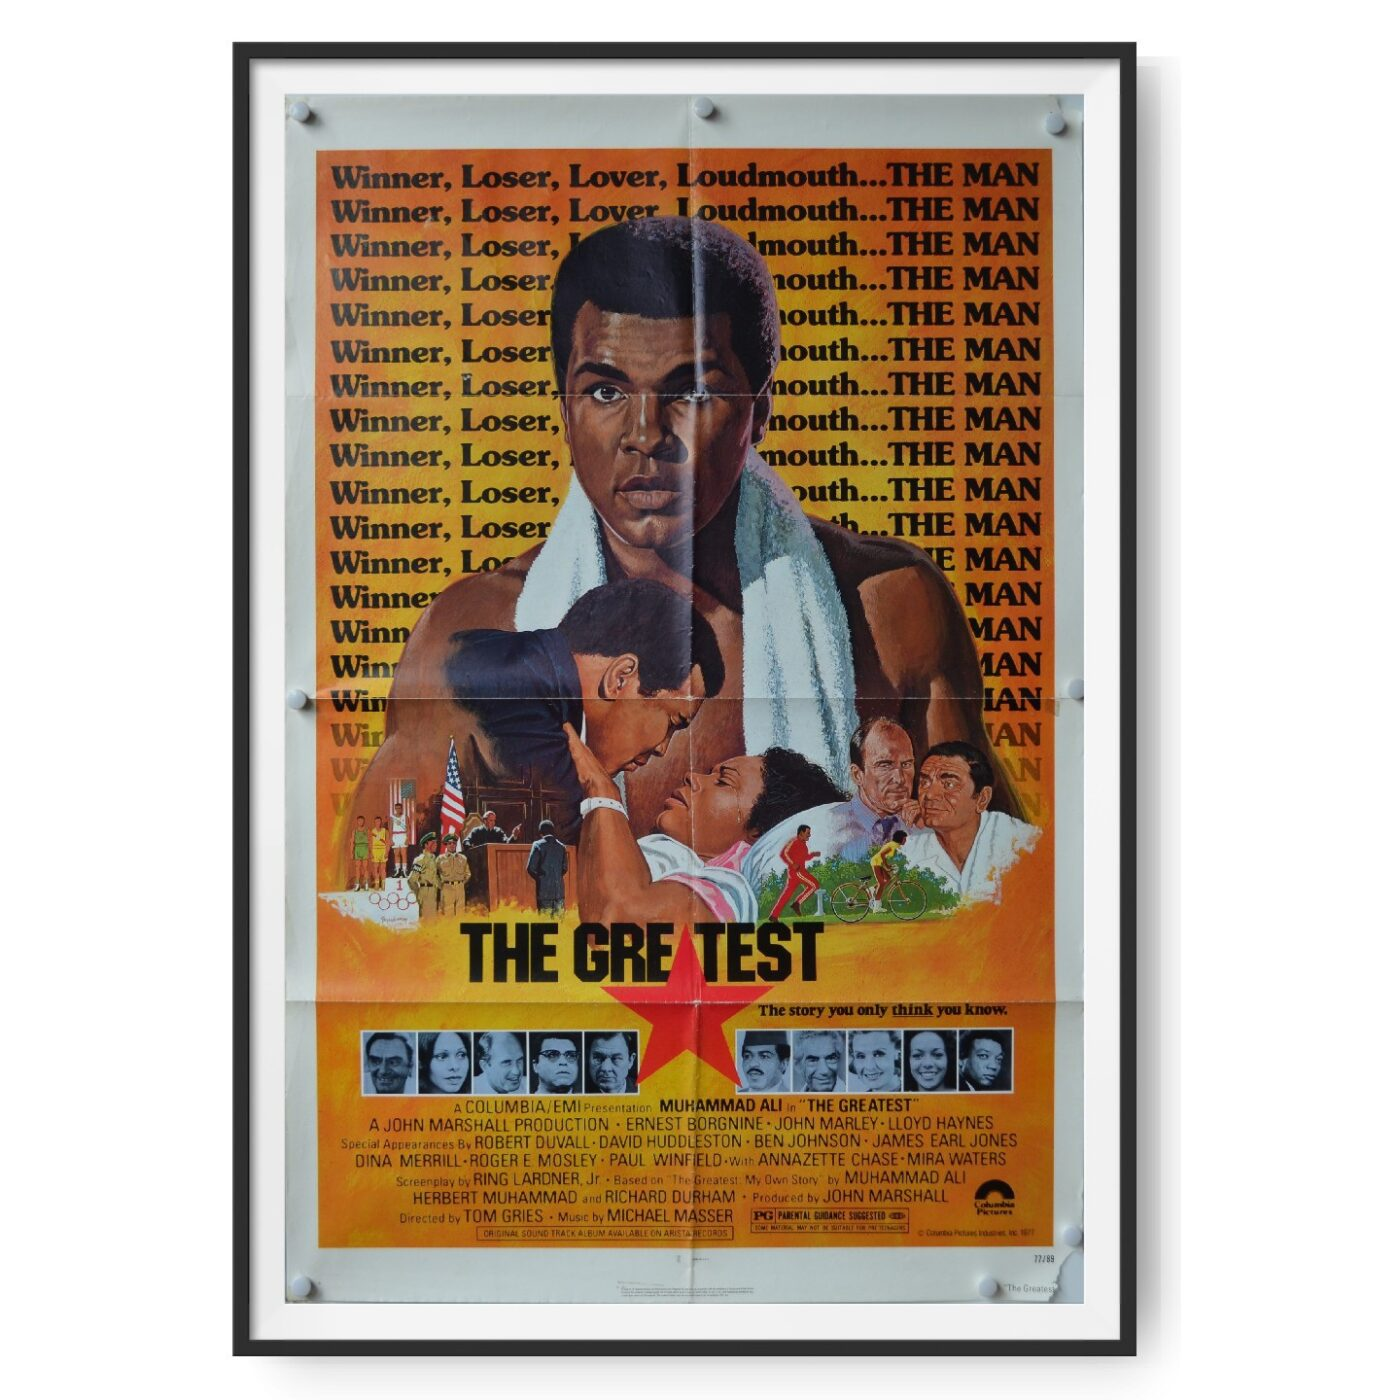 A poster for the Muhammad Ali film 'The Greatest' showing the boxer.